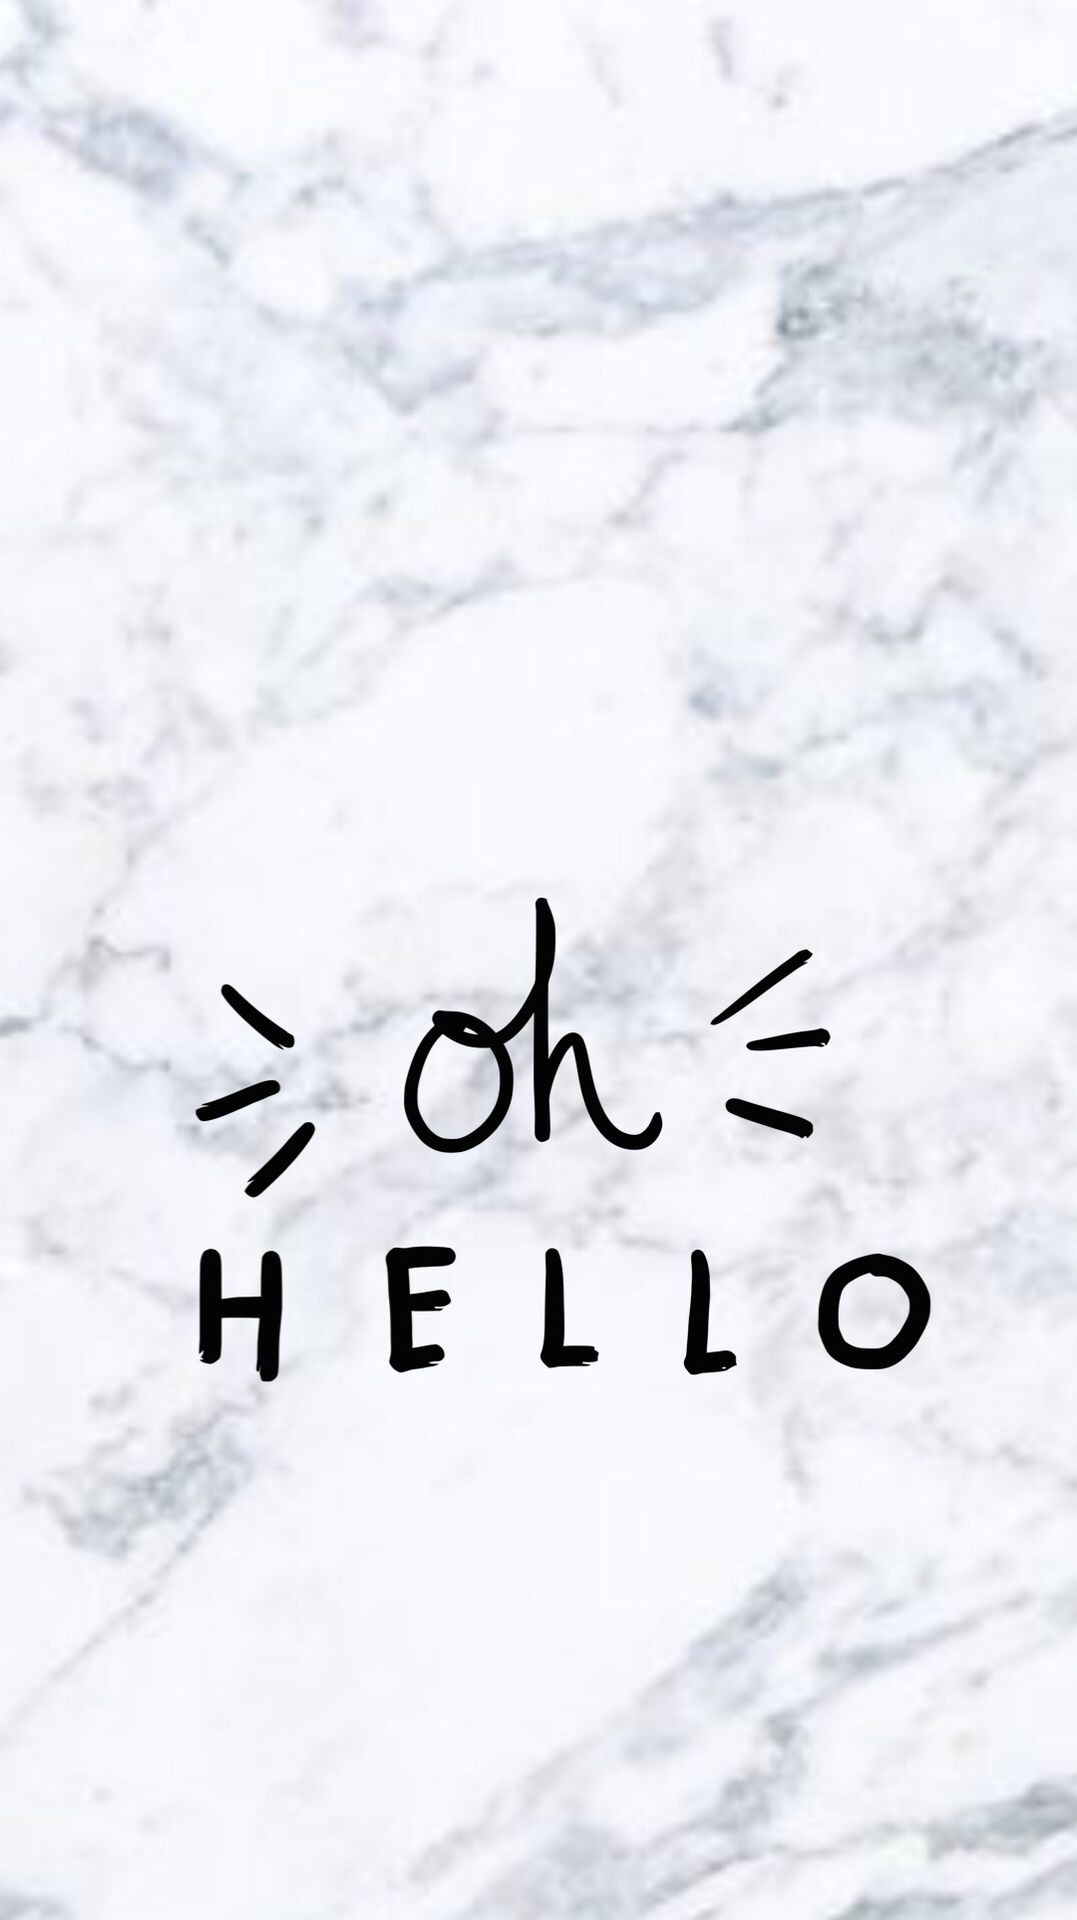 Hello Beautiful Wallpaper Quotes Cute Wallpaper Backgrounds